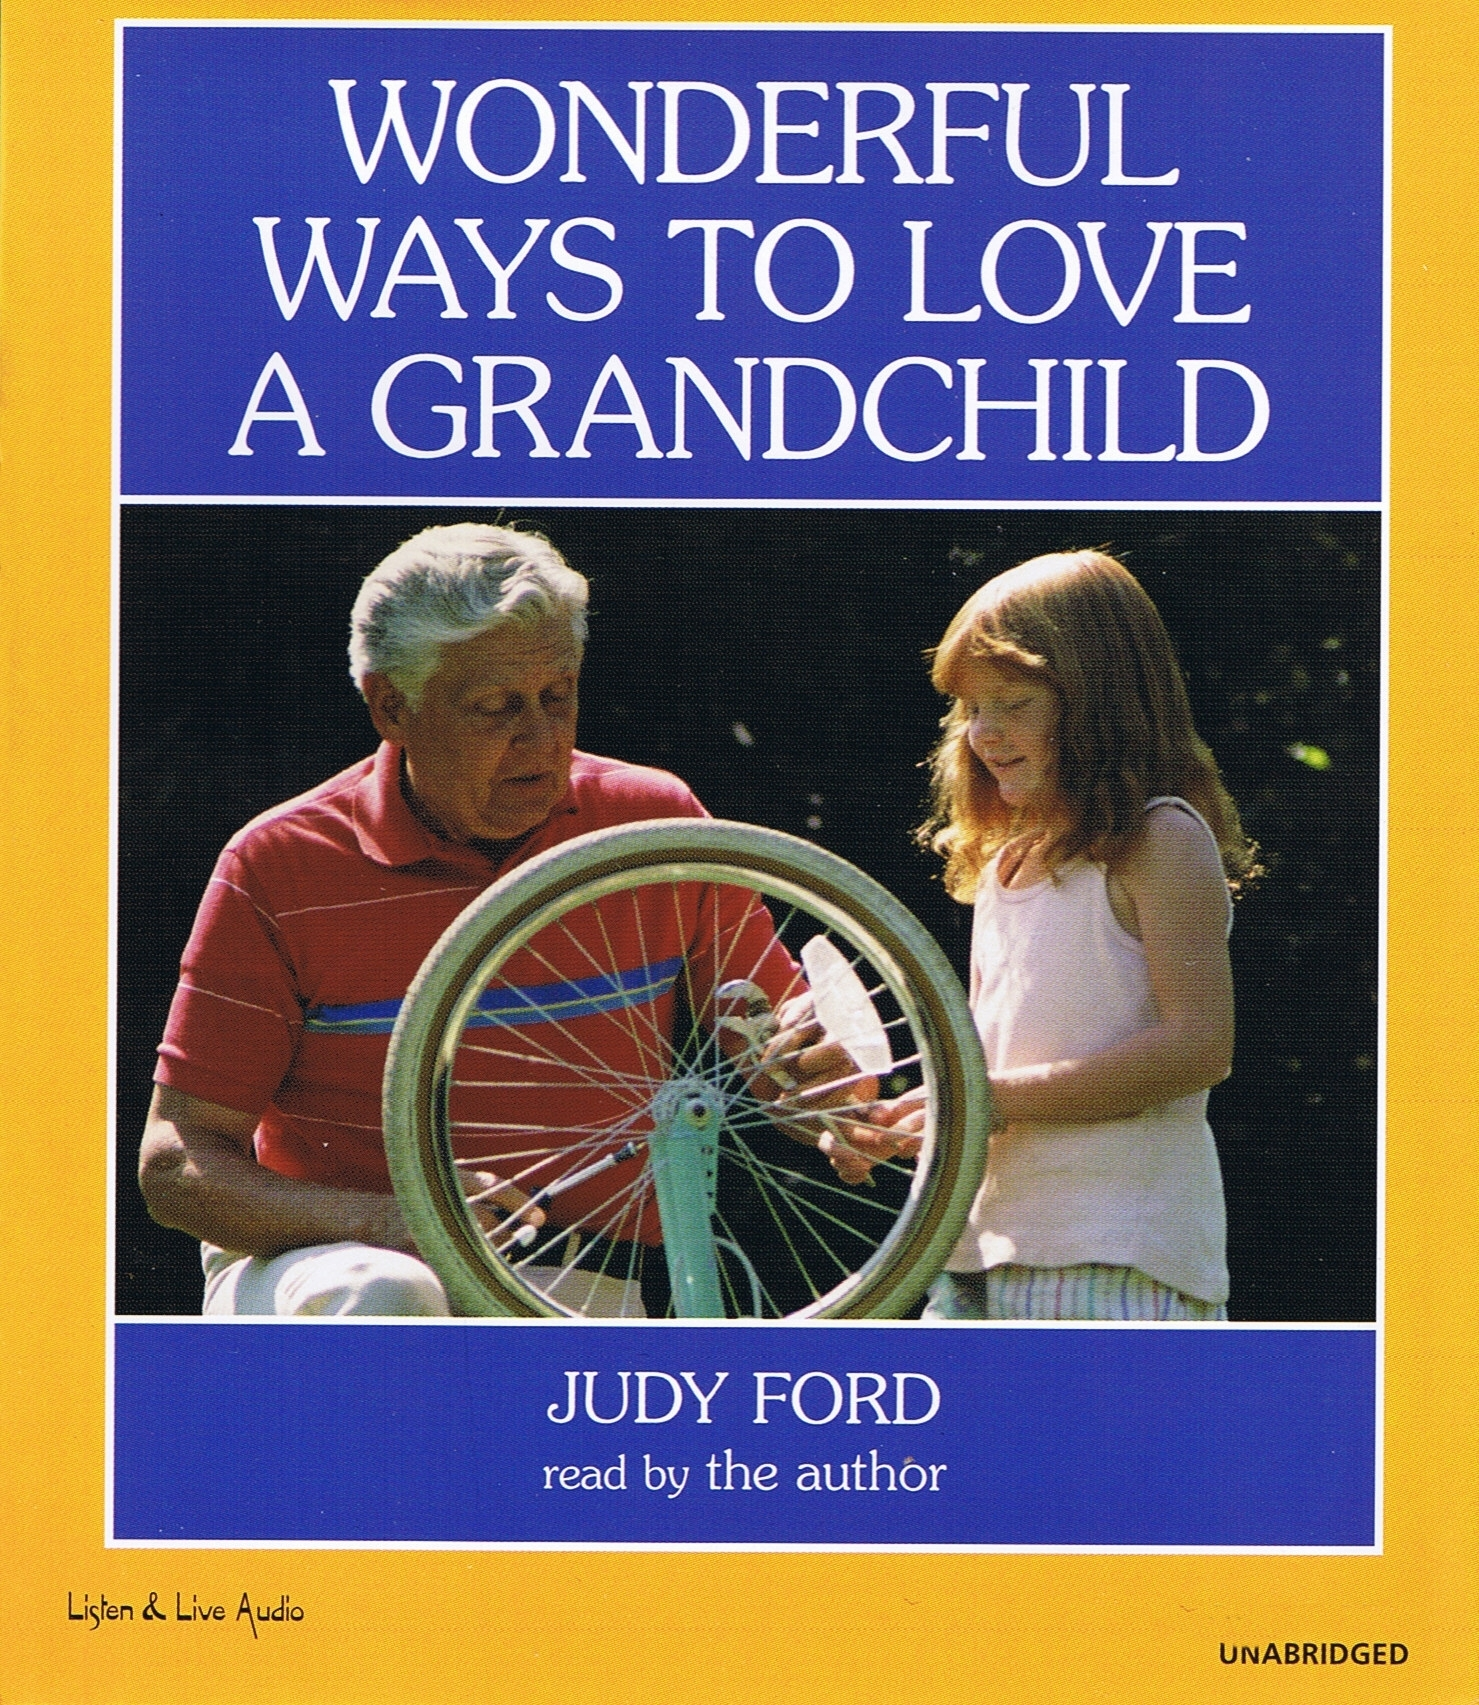 Wonderful Ways To Love A Grandchild [2CS]